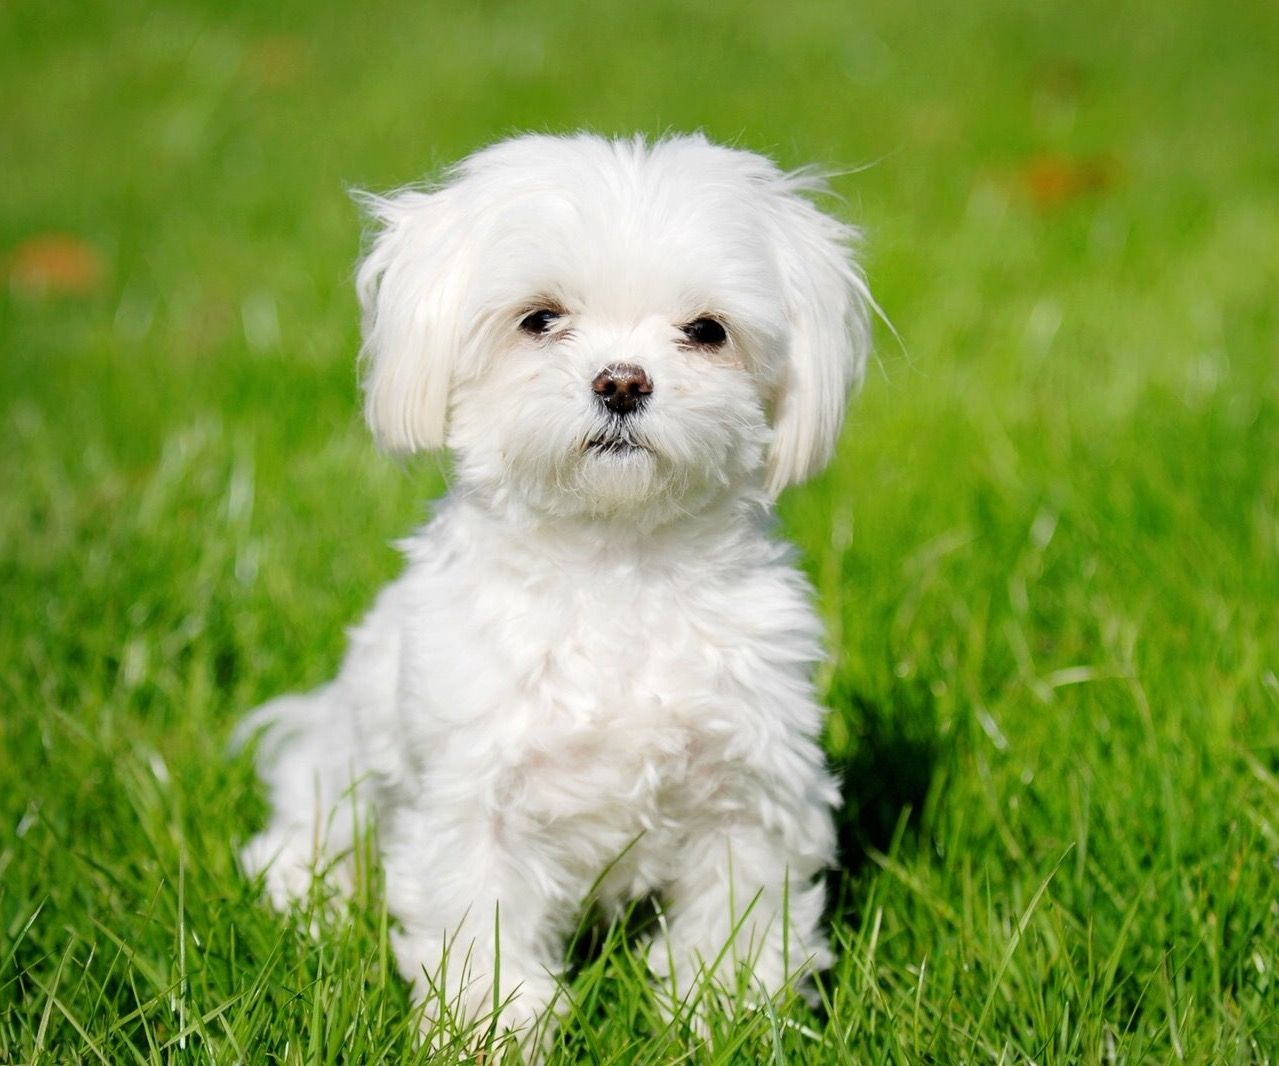 Pin by Sharon Snyder on Adorable dog Hypoallergenic dog